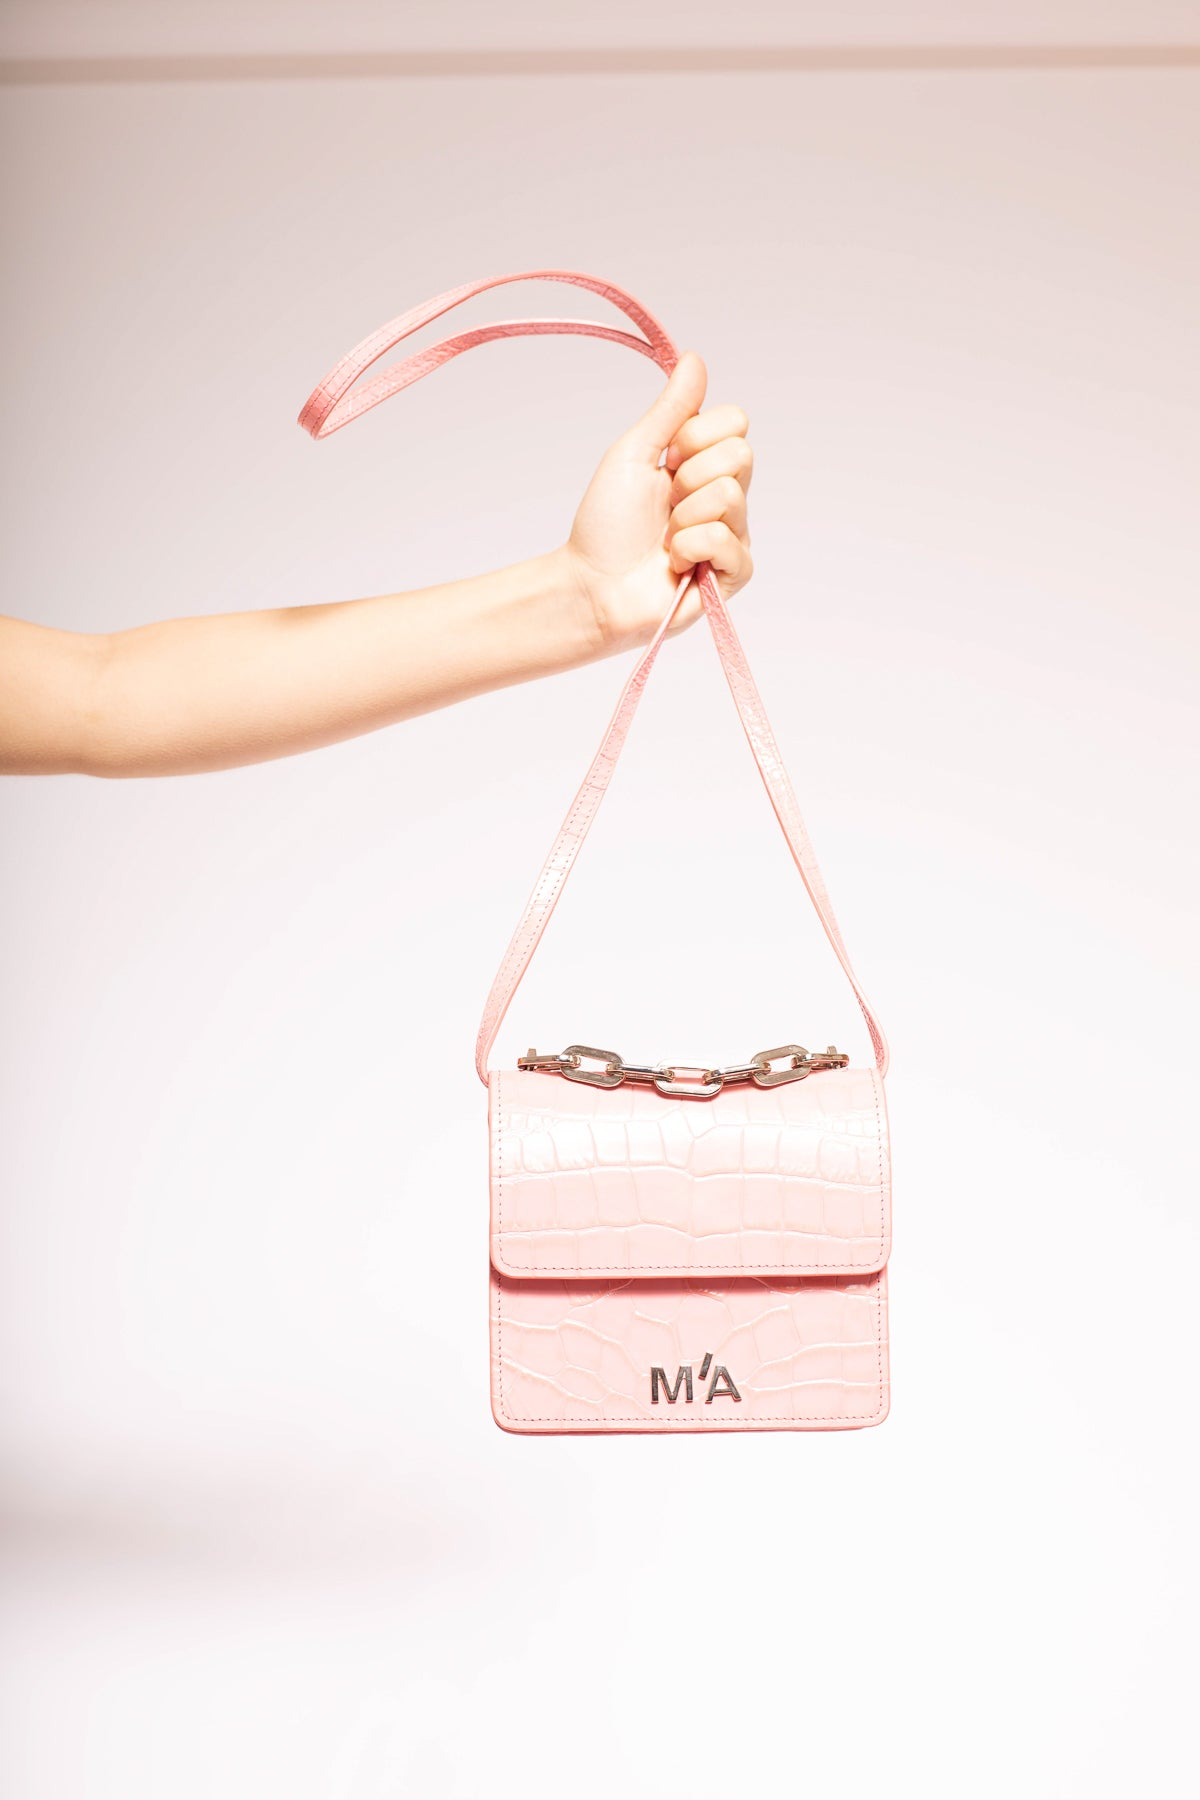 MINI CHAIN BAG IN PINK